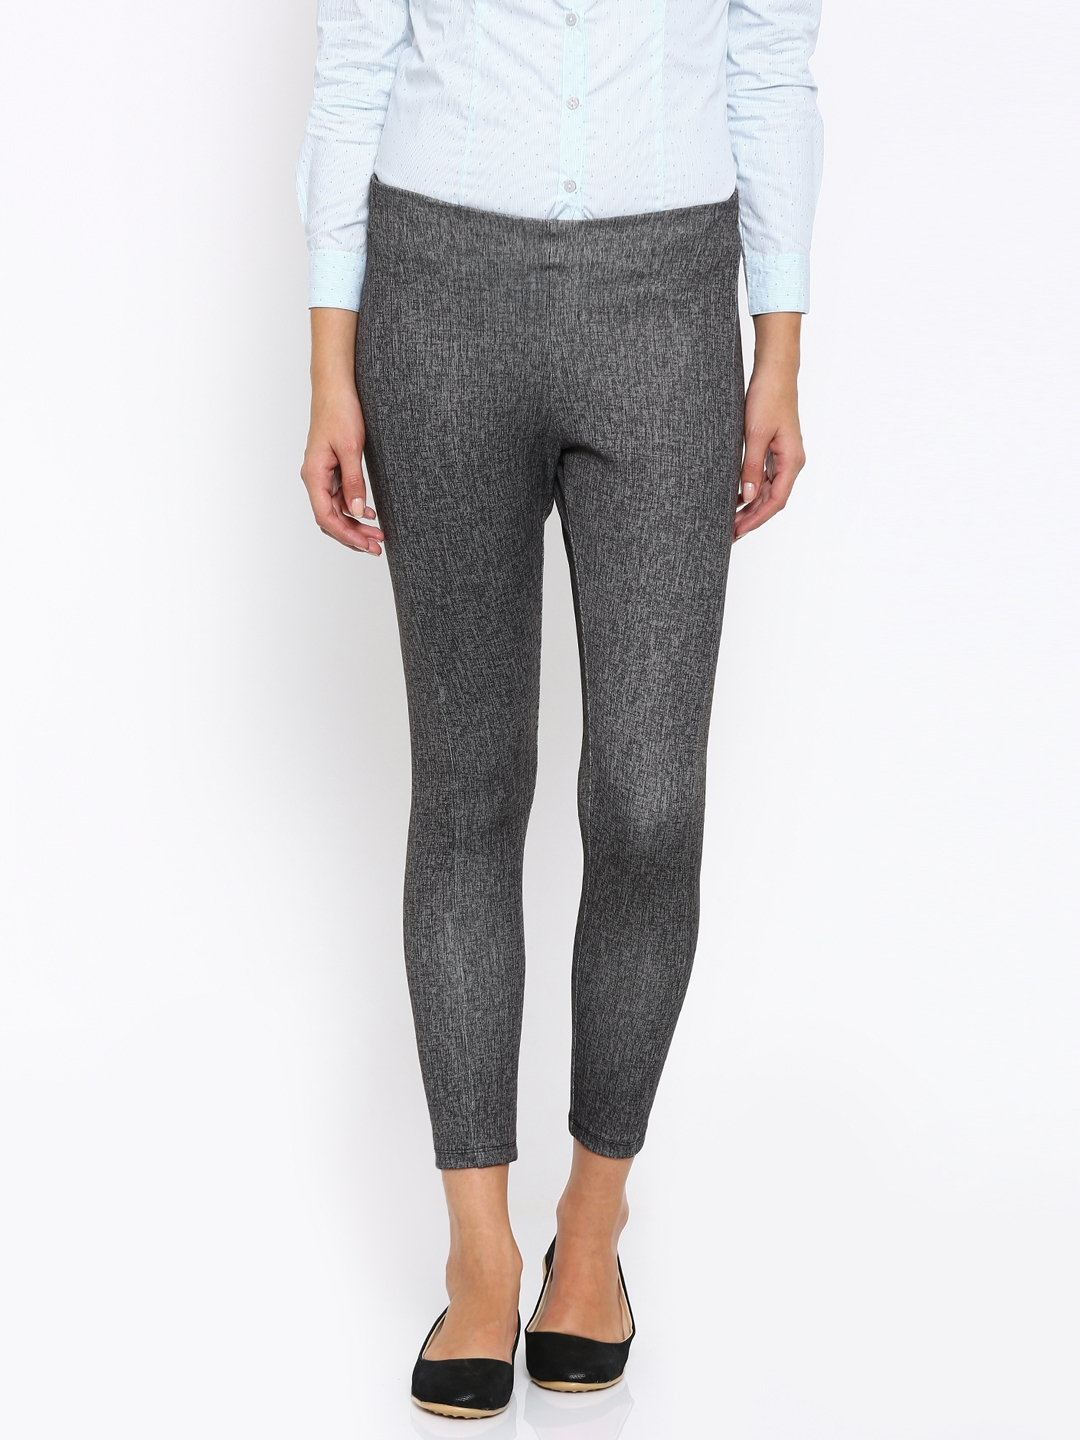 a50f0b1f144688 Buy Annabelle By Pantaloons Grey Printed Treggings - Jeggings for Women  1499379 | Myntra